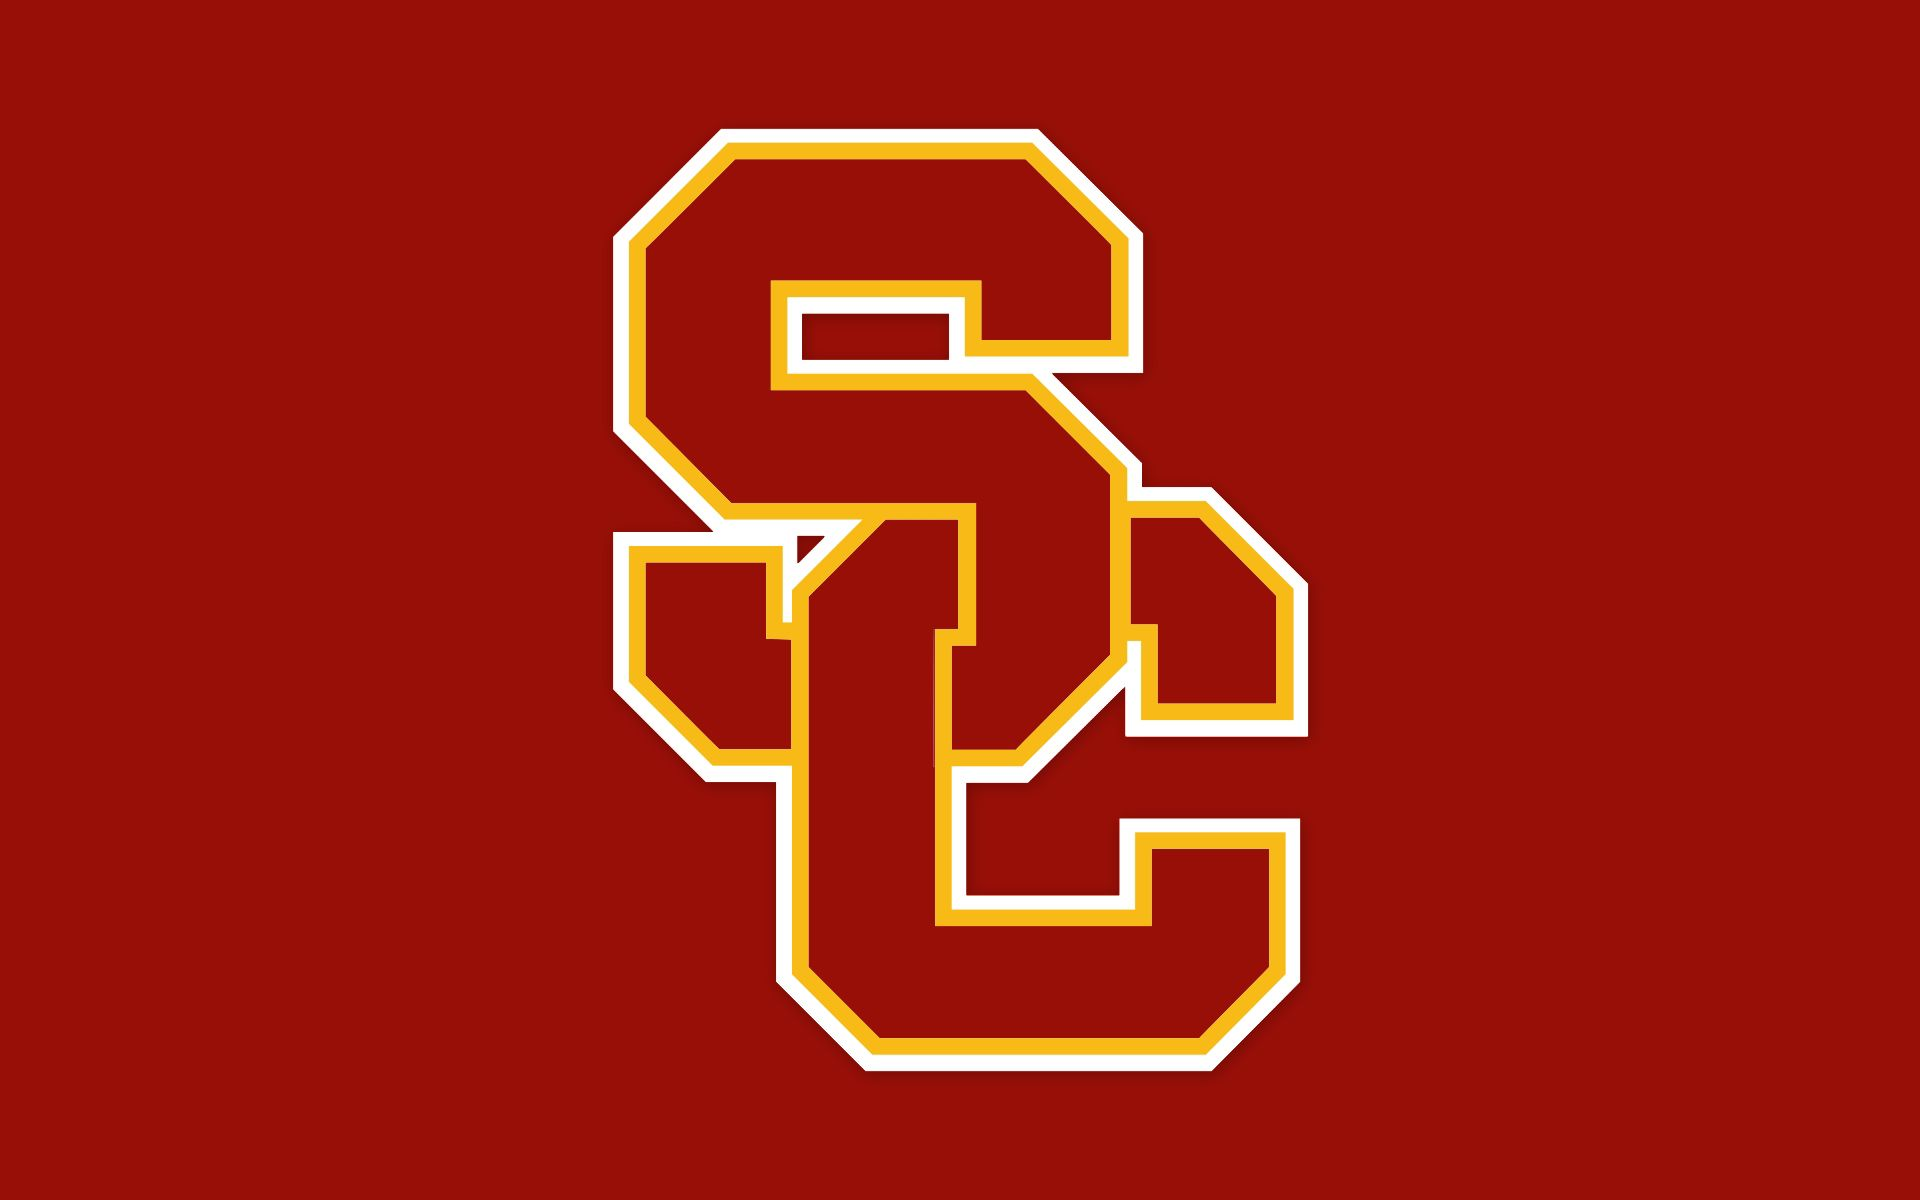 Usc Trojans Wallpaper